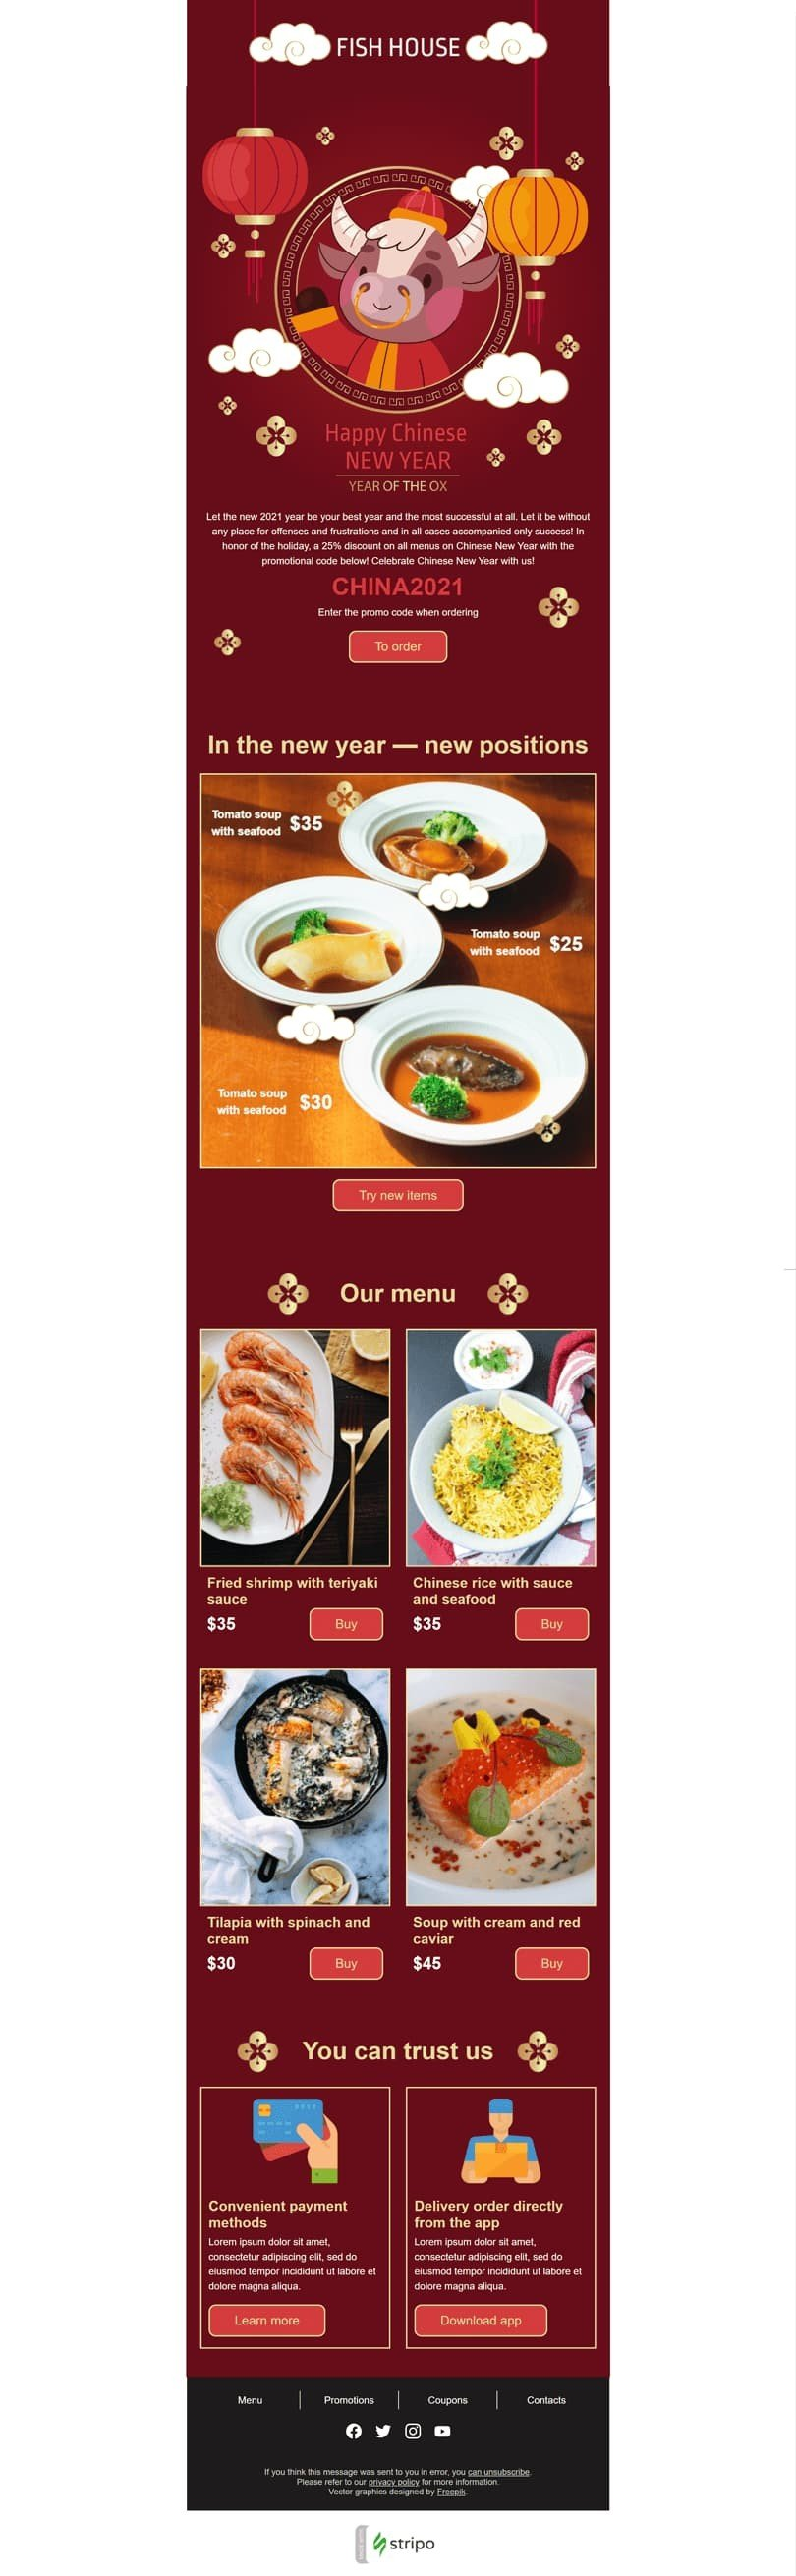 Chinese New Year Email Template «Fish house» for Food industry desktop view